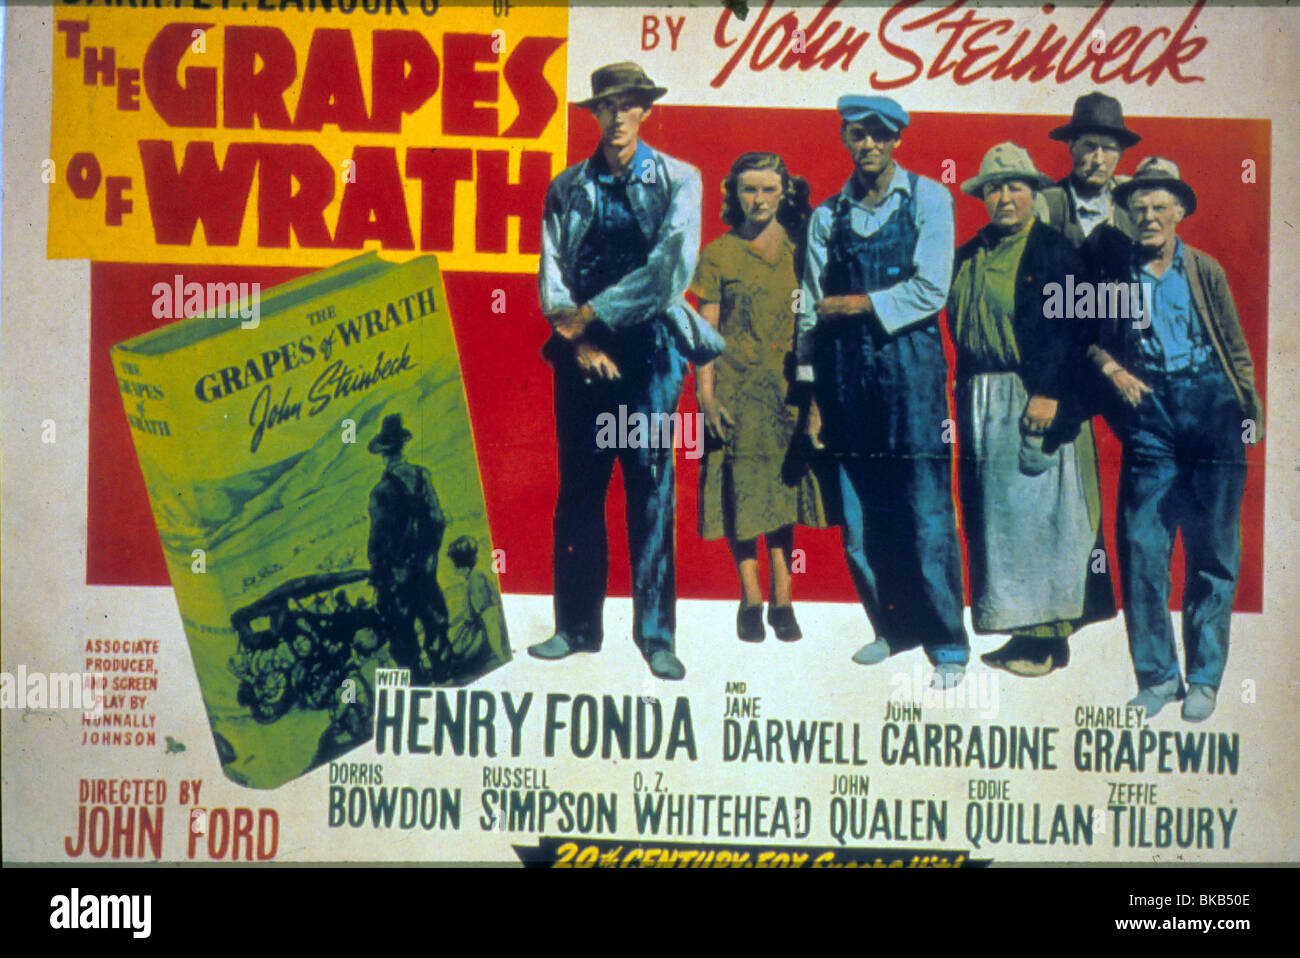 THE GRAPES OF WRATH(1940) POSTER GOWR 005 - Stock Image